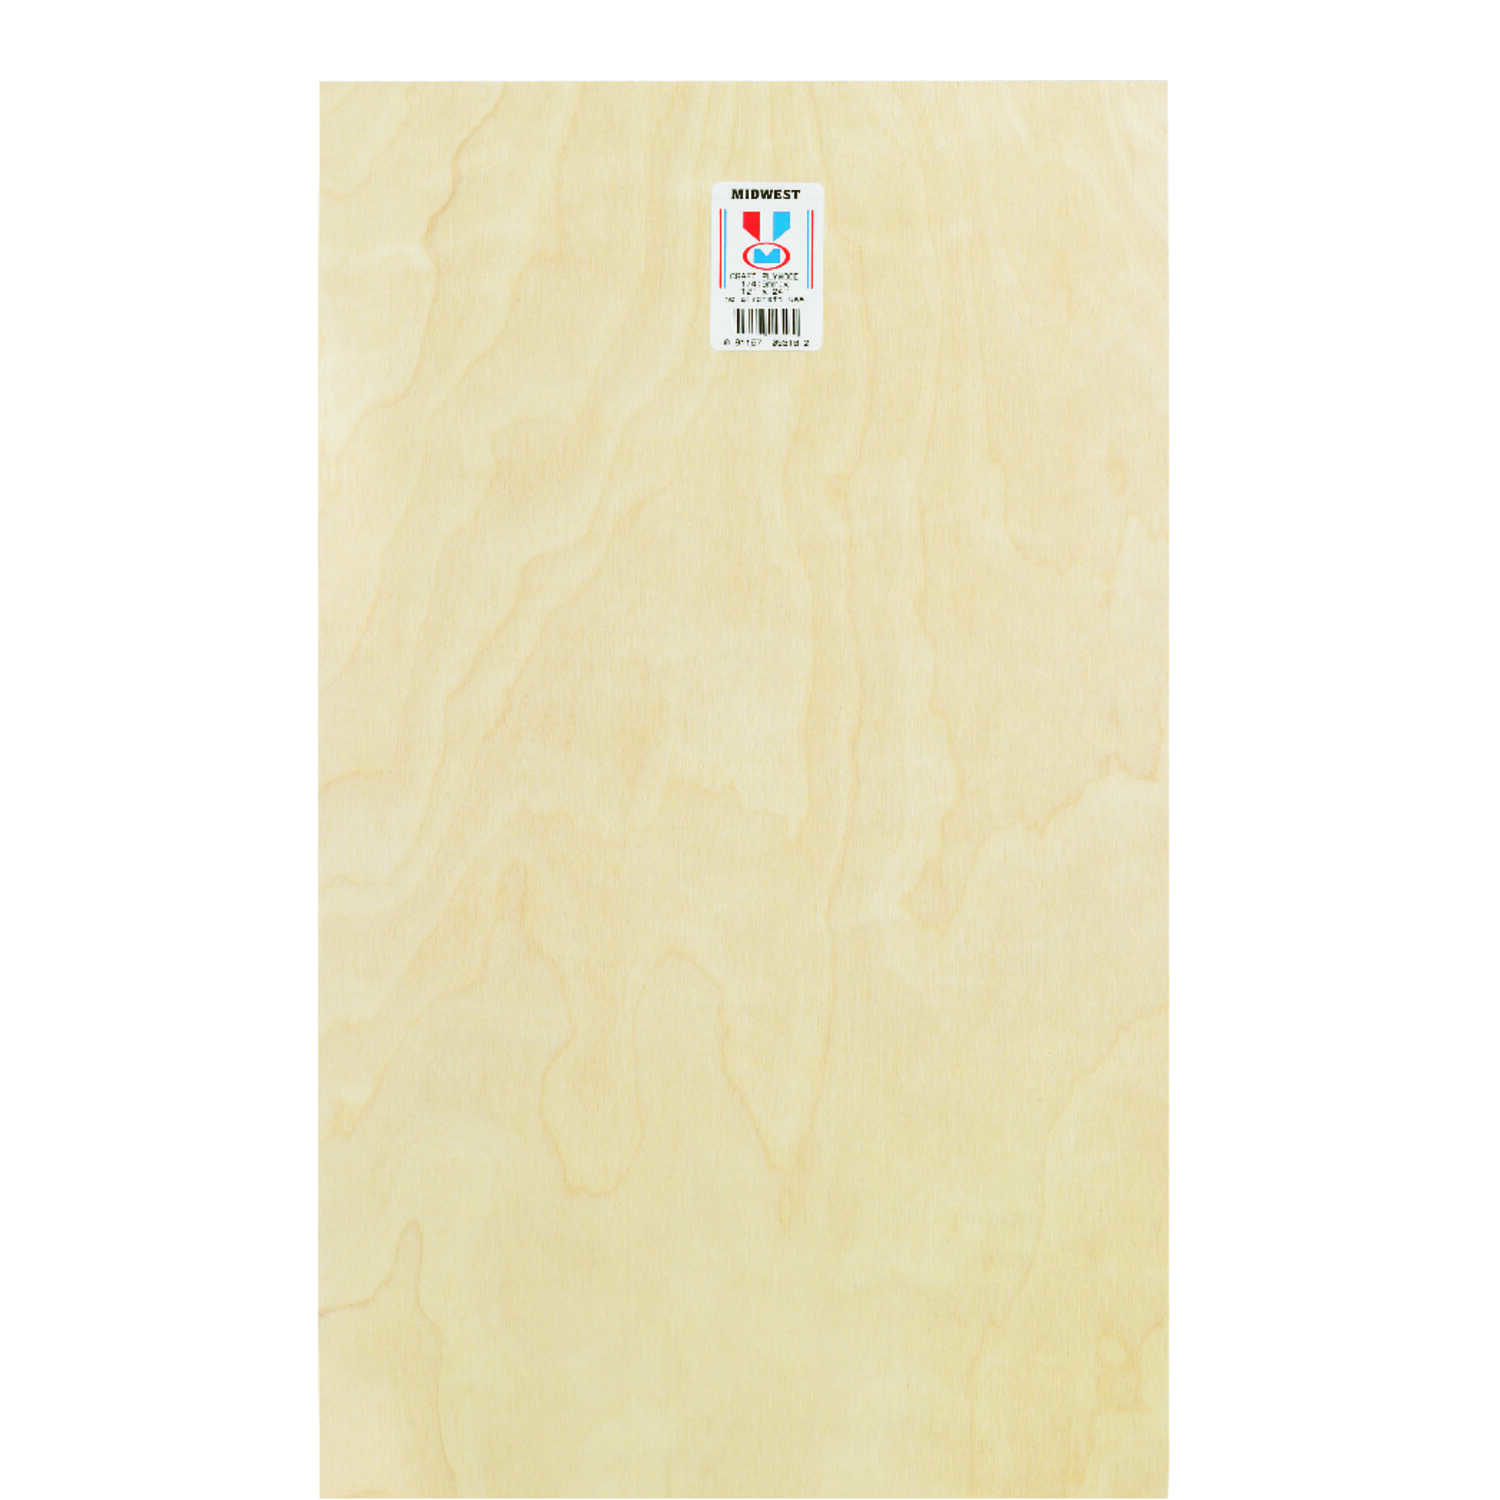 Midwest Products  12 in. W x 24 in. L x 1/4 in.  Plywood